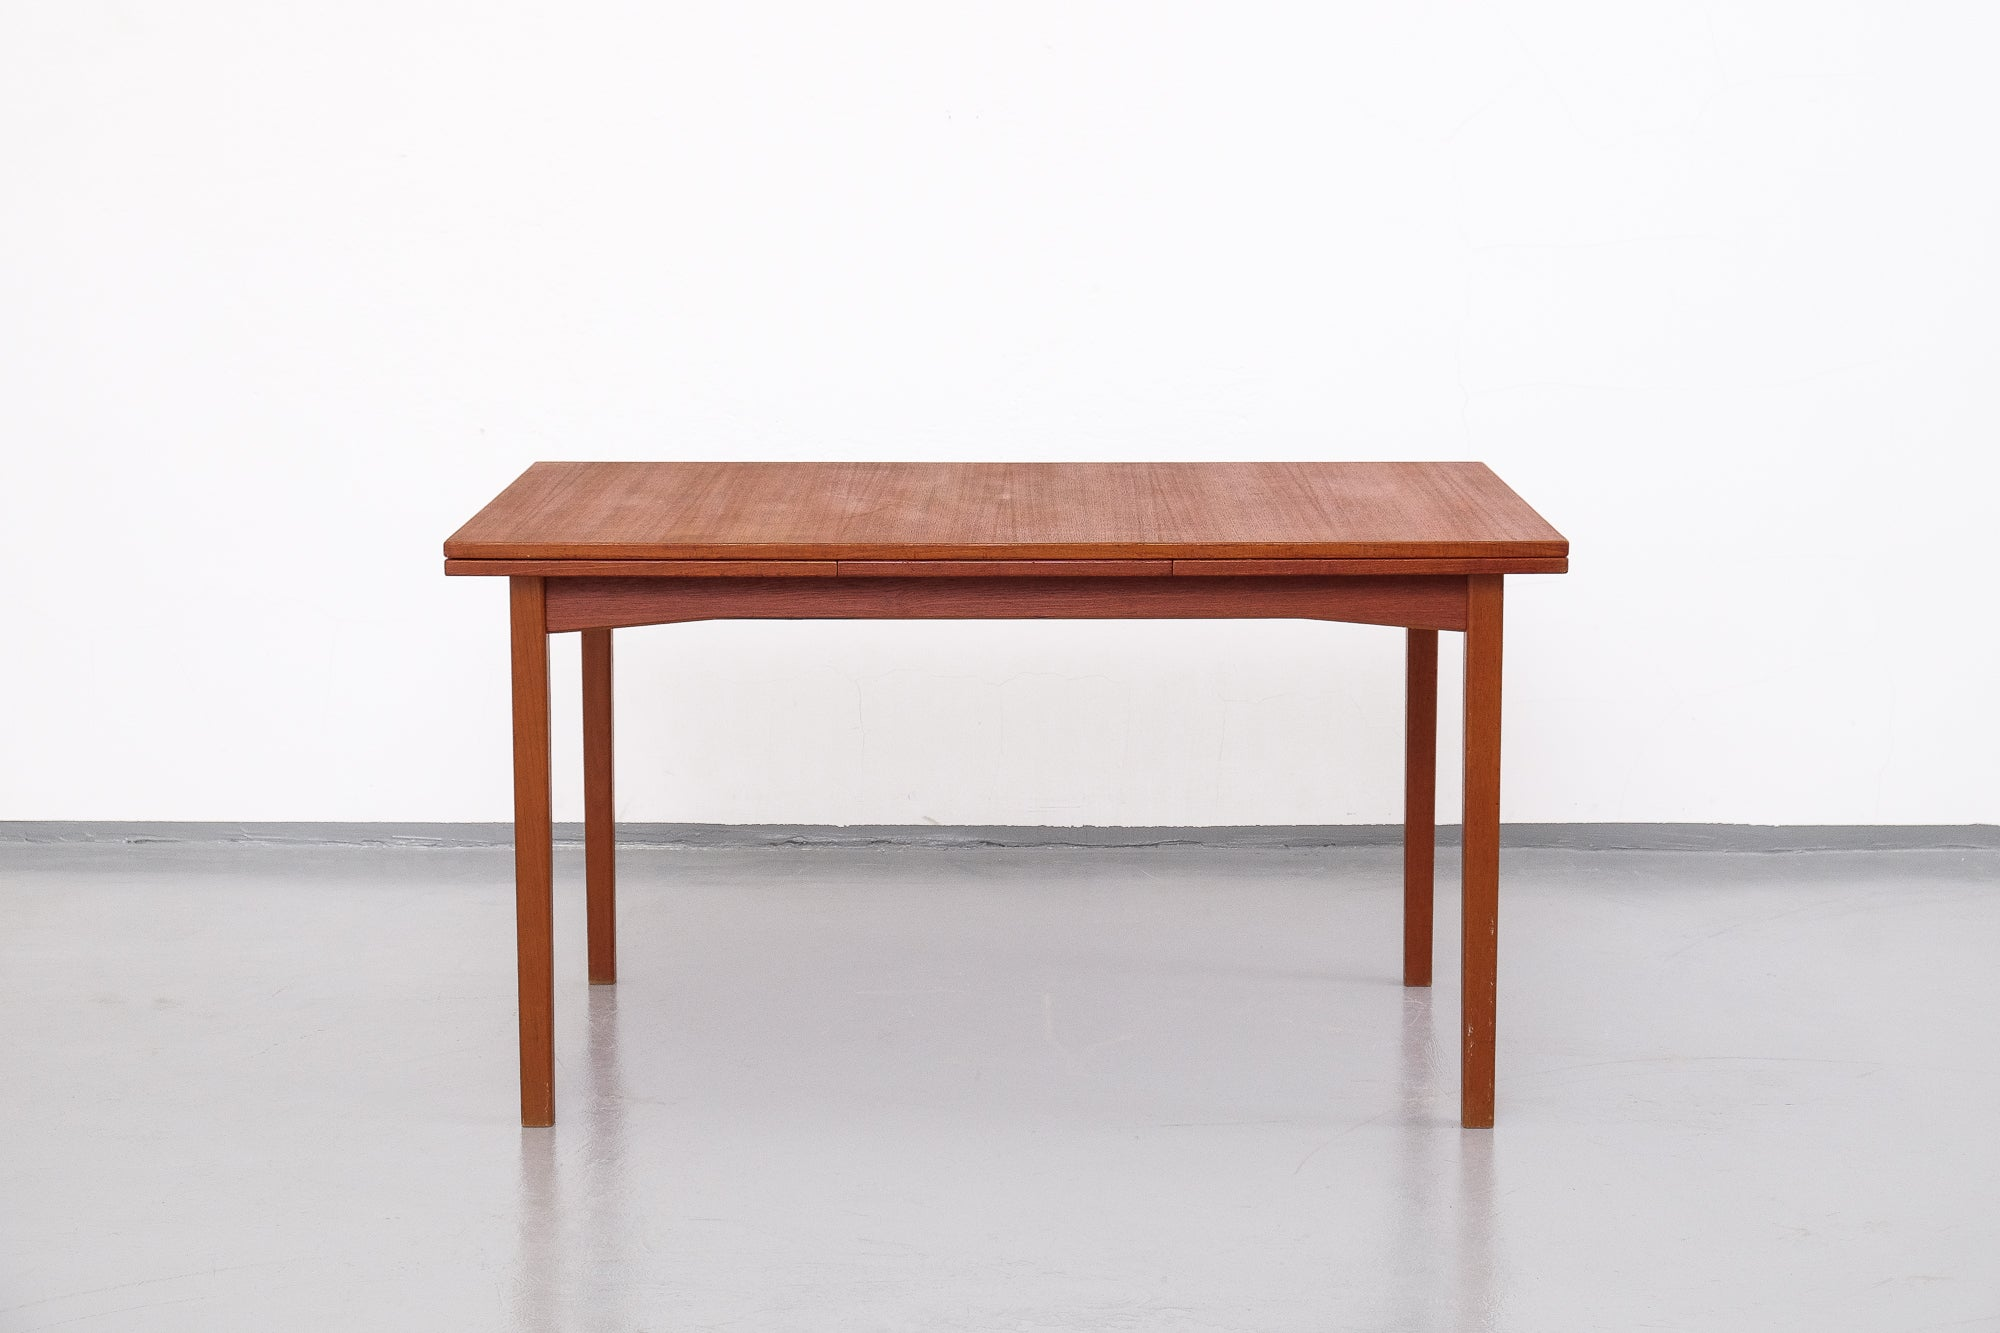 Teak Extendable Dining Table from Ulferts Möbler, 1960s